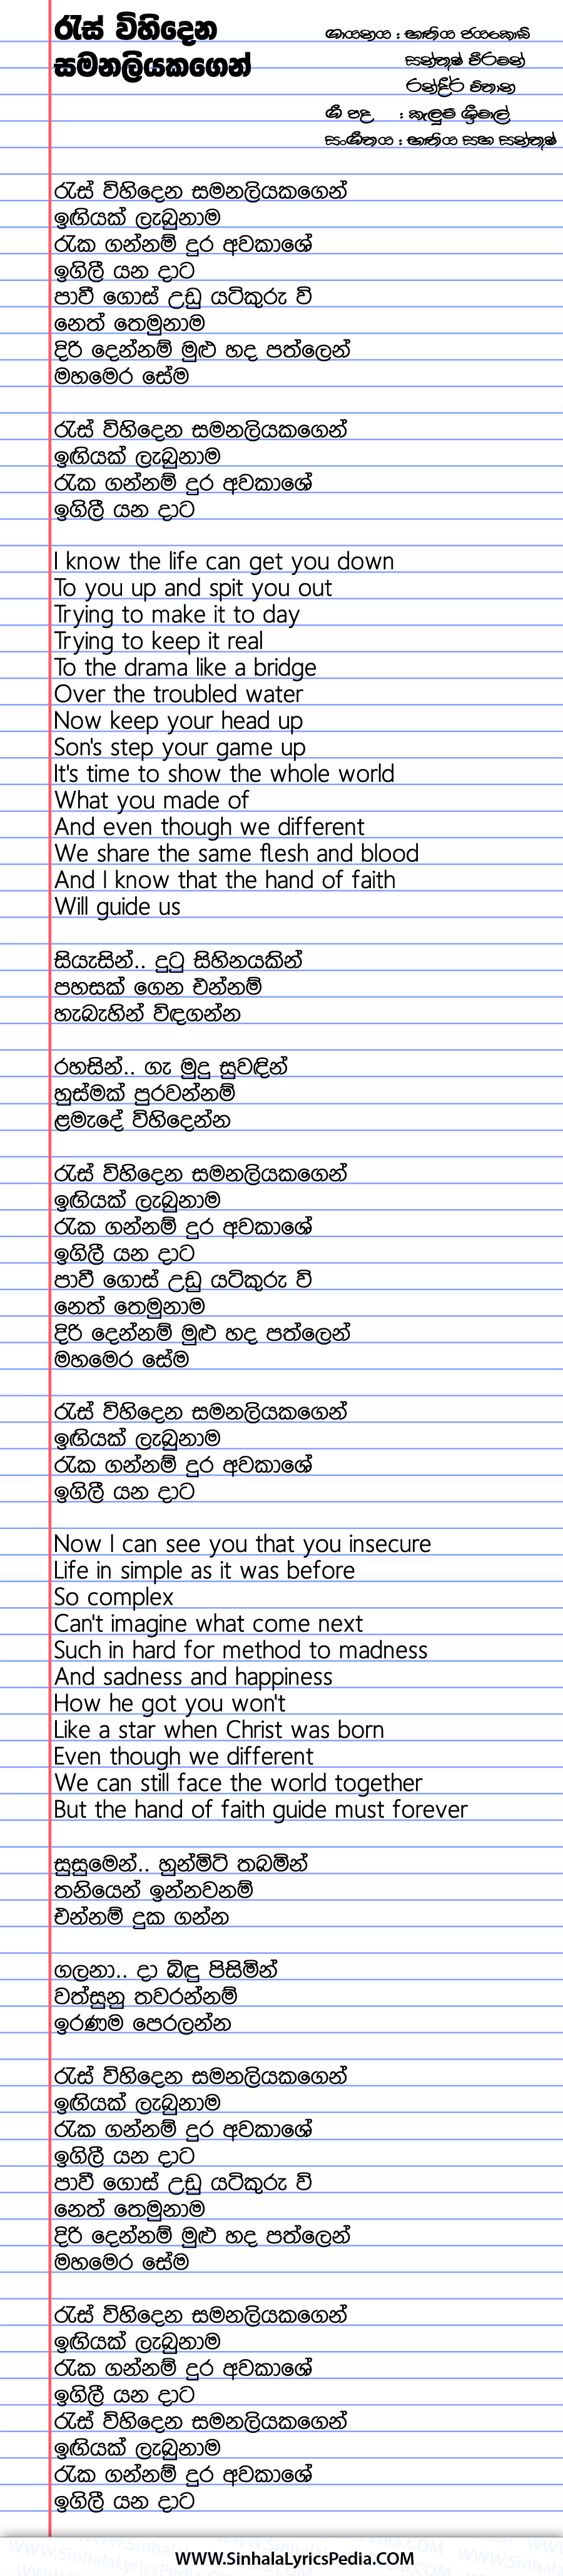 Res Vihidena Samanaliyakagen Song Lyrics